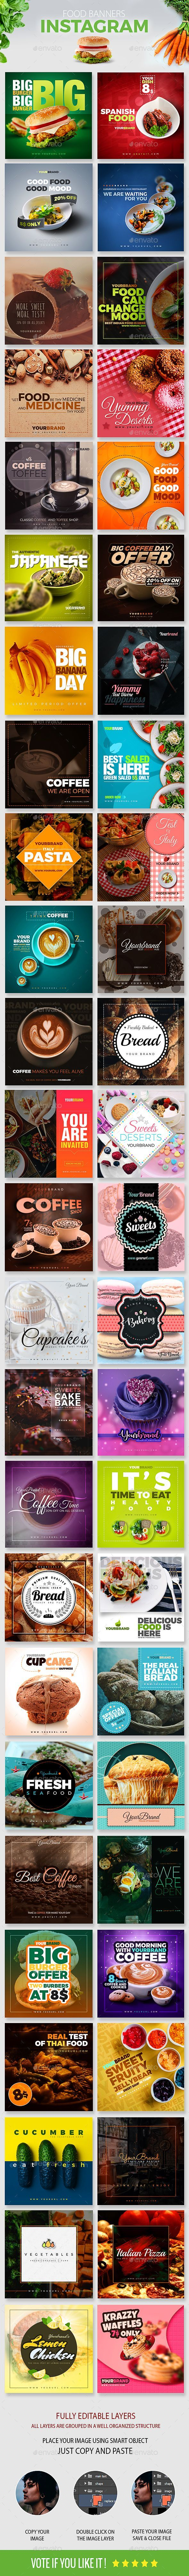 50 Food Instagram Banners — Photoshop PSD #promote #insta • Download ➝ https://graphicriver.net/item/50-food-instagram-banners/20407025?ref=pxcr